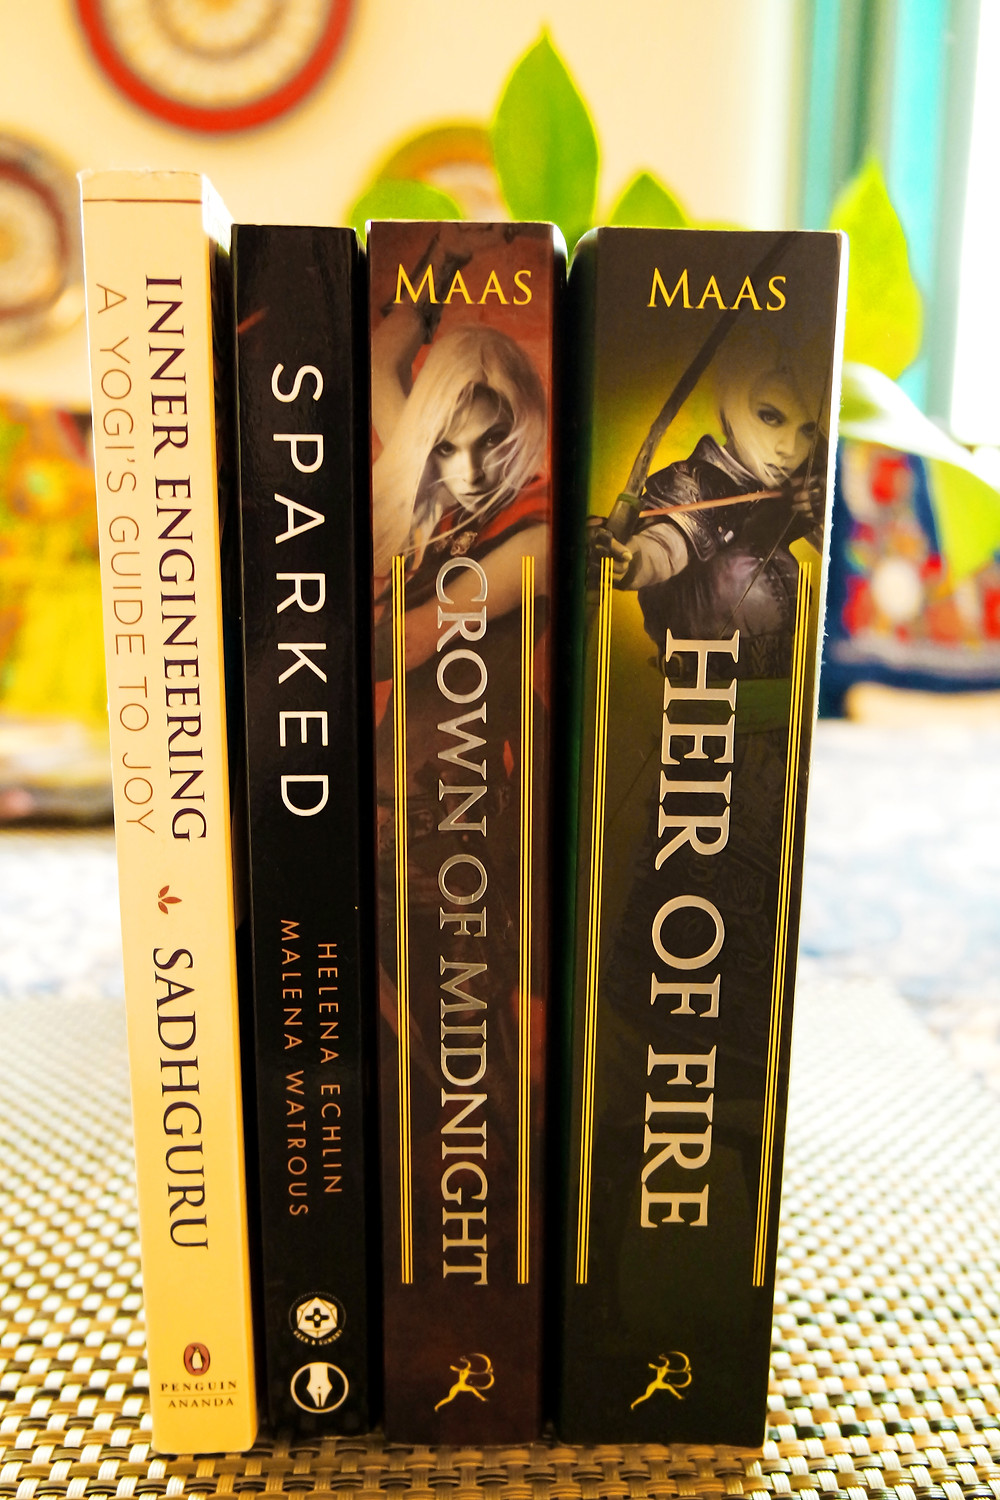 Four books - Inner Engineering, A Yogi's Guide to Joy, Sparked, Crown of Midnight, and Heir of Fire